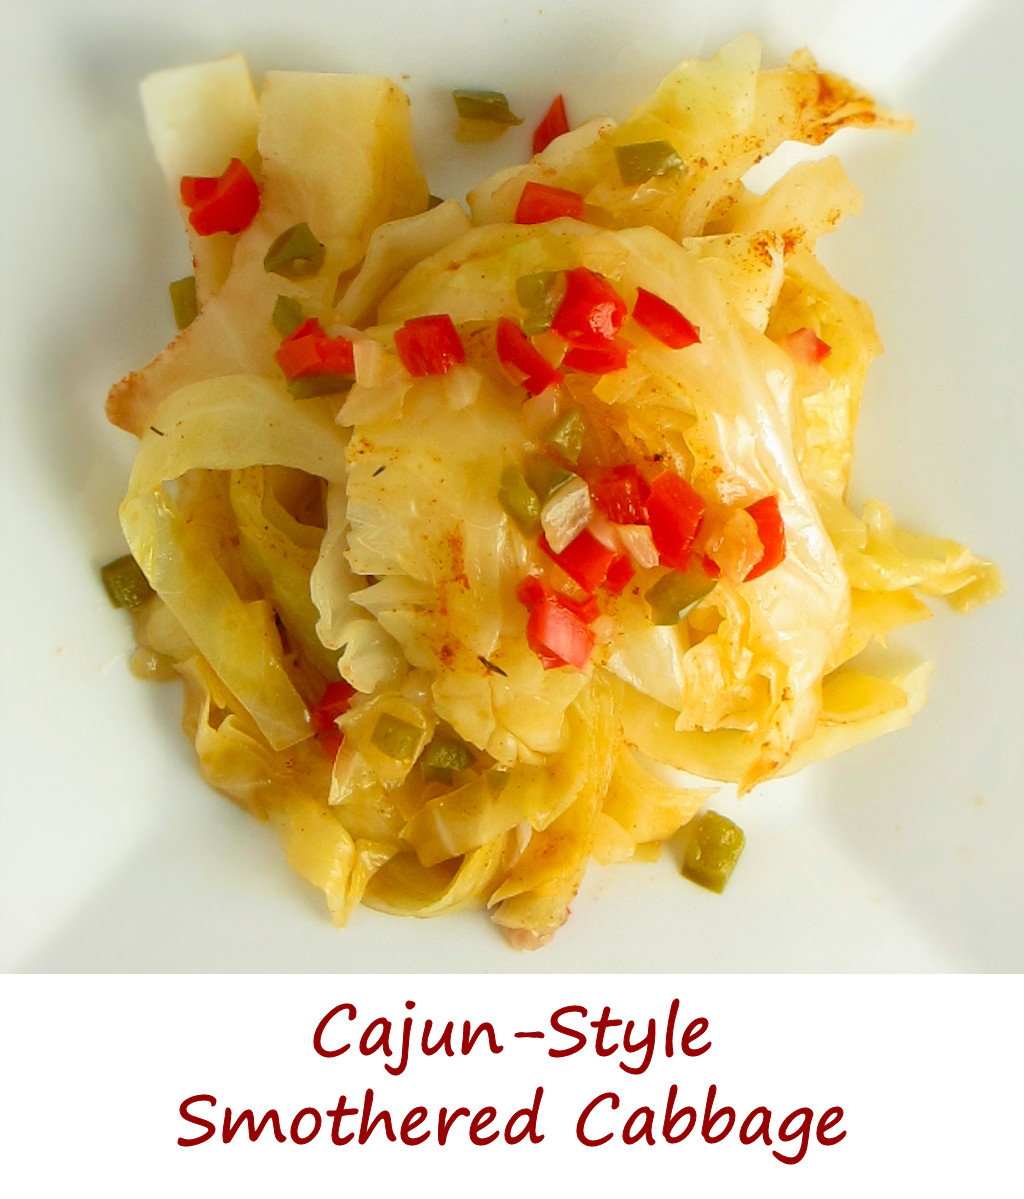 Cajun-Style Smothered Cabbage